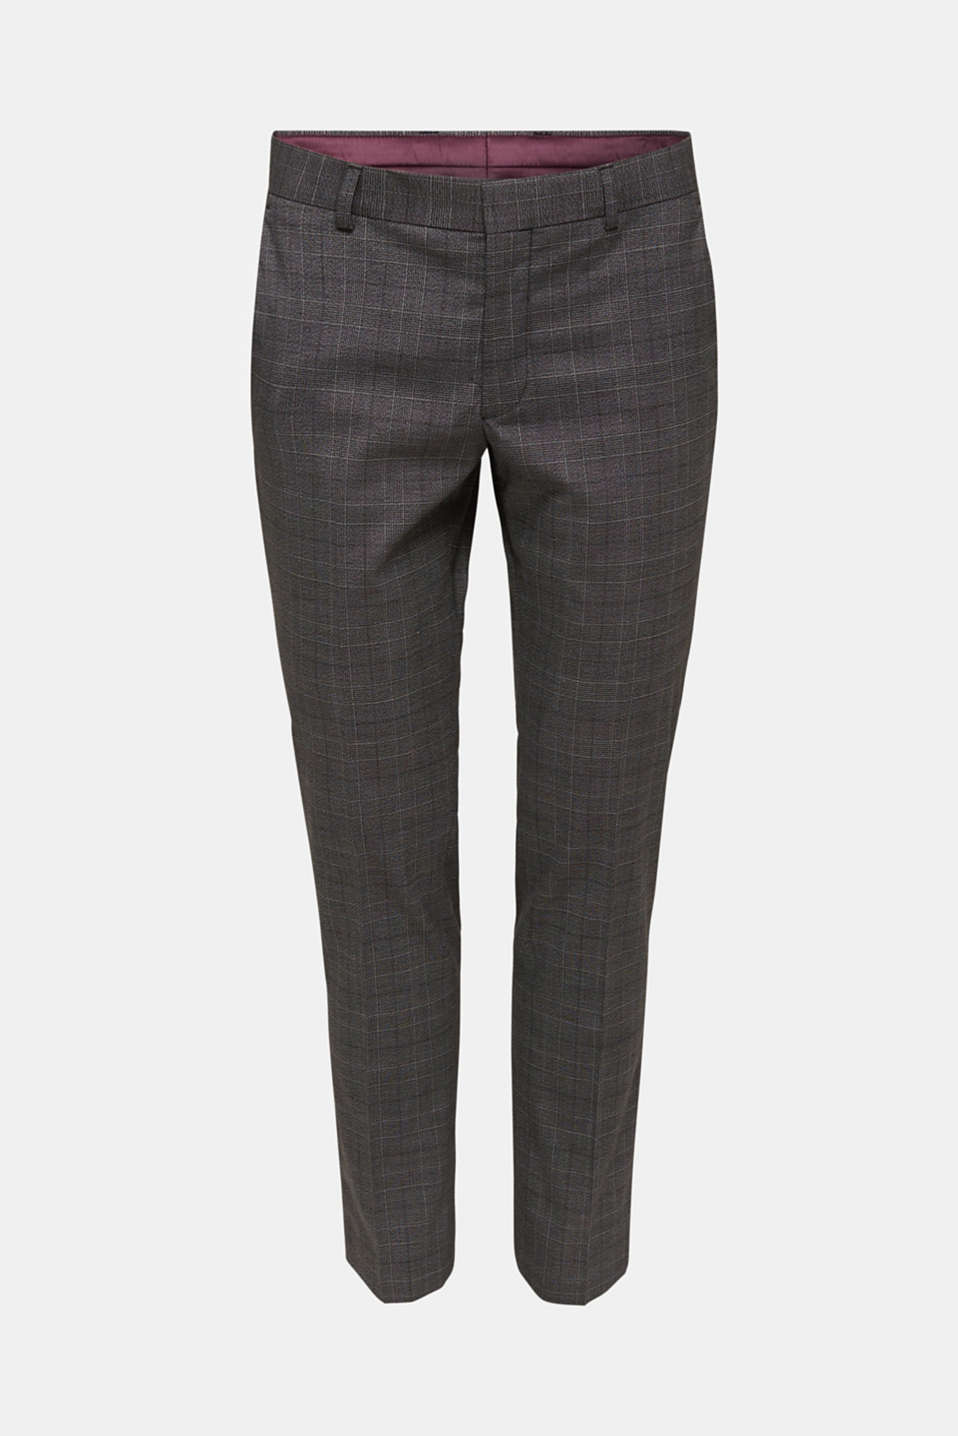 GLENCHECK mix + match: Trousers with Prince of Wales check pattern, DARK GREY 3, detail image number 5